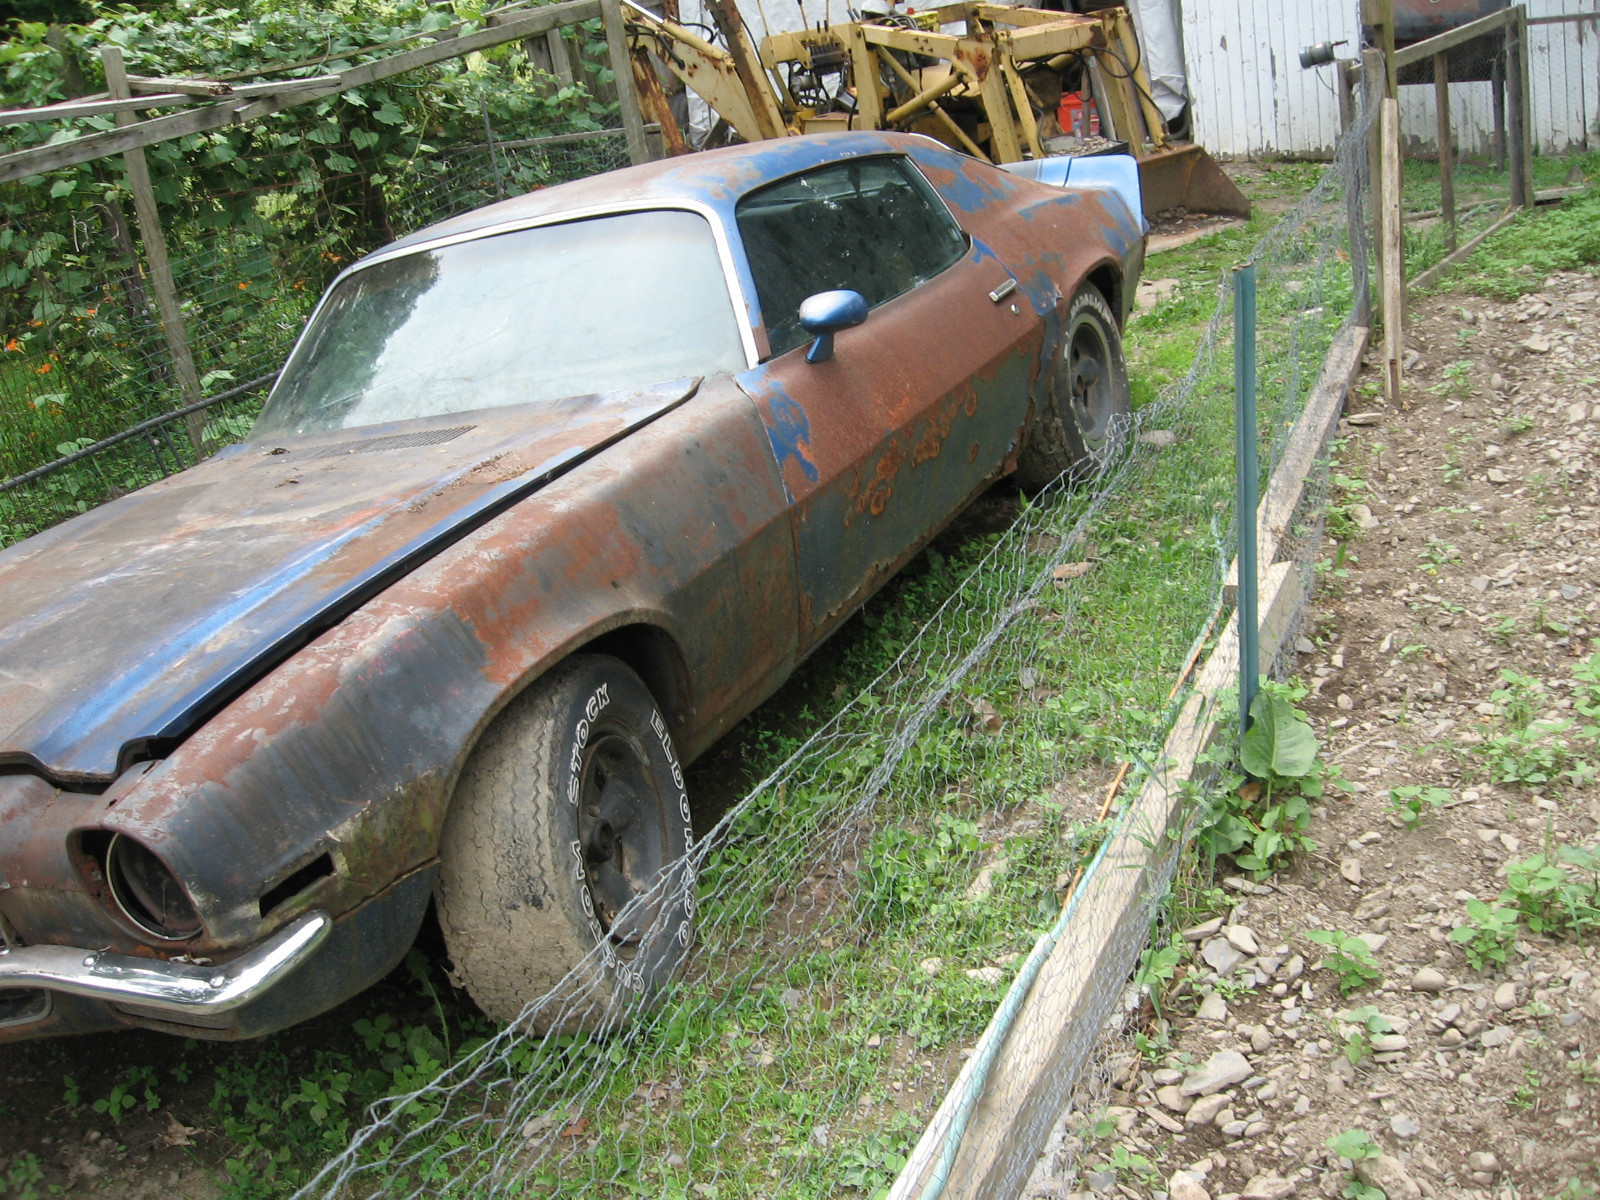 1970 To 1973 Chevrolet Camaros For Sale Used On Oodle